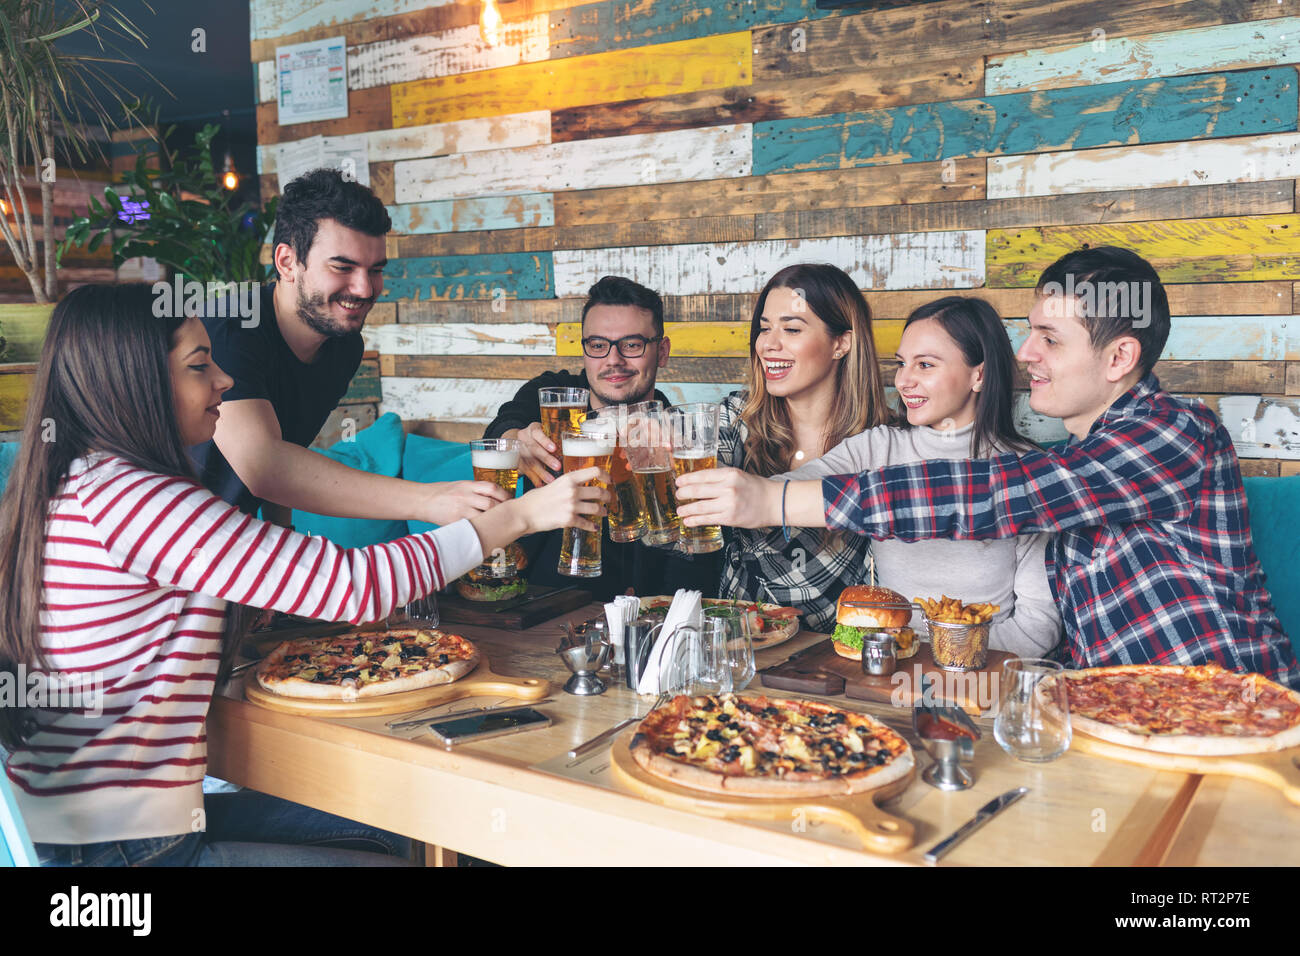 Happy young friends celebrating with pizza and drinking beer at bar restaurant - Friendship concept with young people enjoying time together and havin - Stock Image